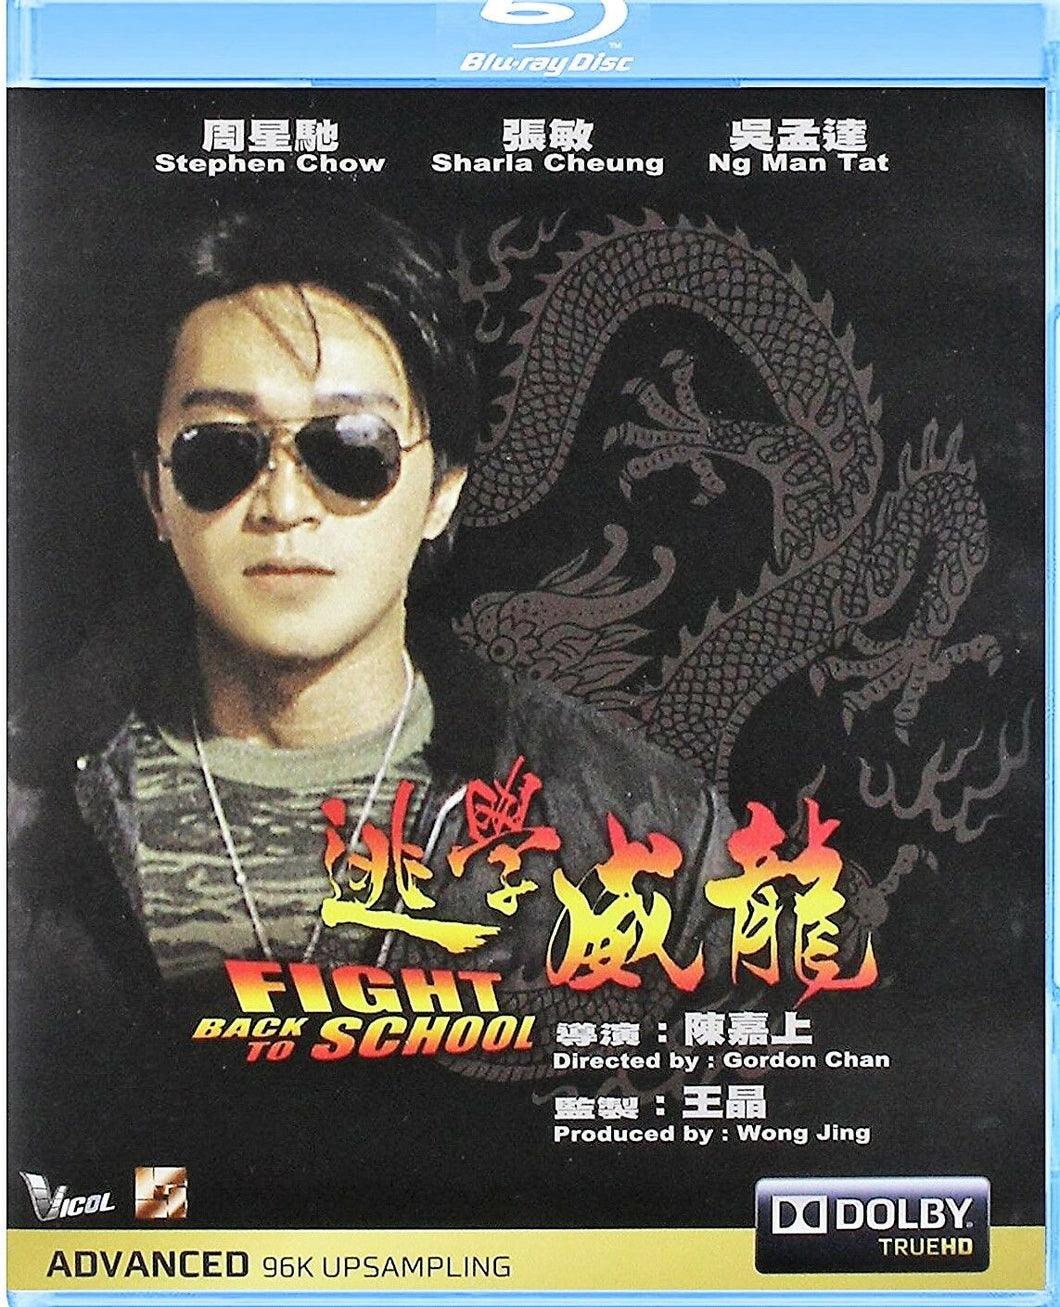 Fight Back To School 逃學威龍 1991 (Hong Kong Movie) BLU-RAY with English Subtitles (Region Free)